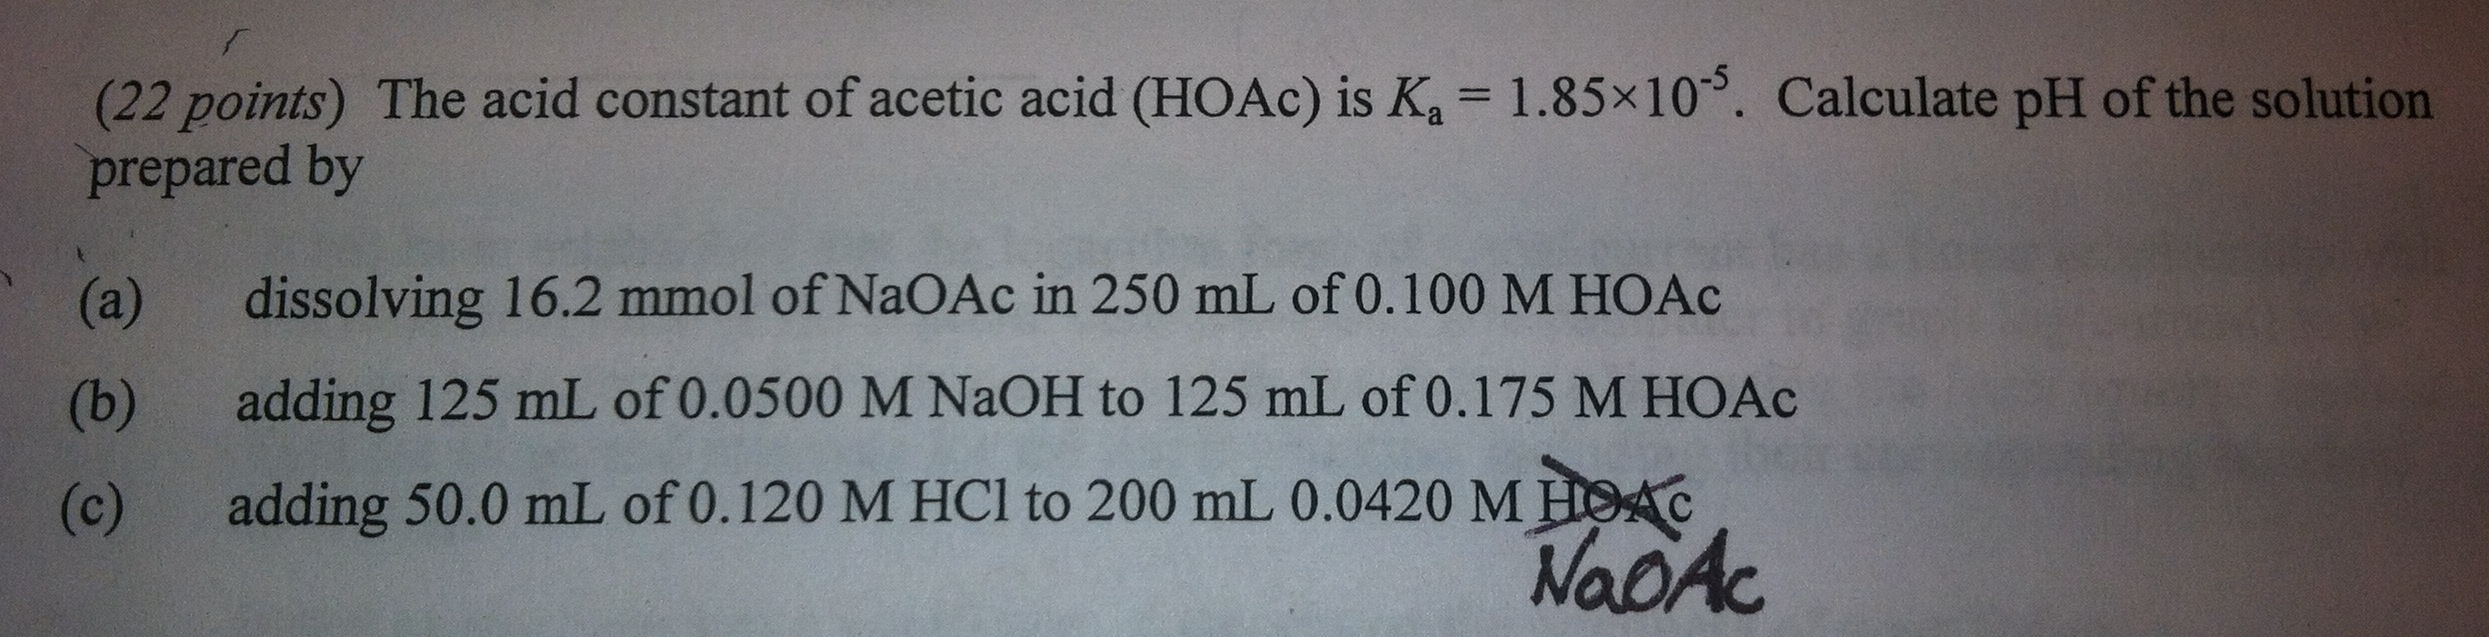 The acid constant of acetic acid (HOAc) is Ka = 1.